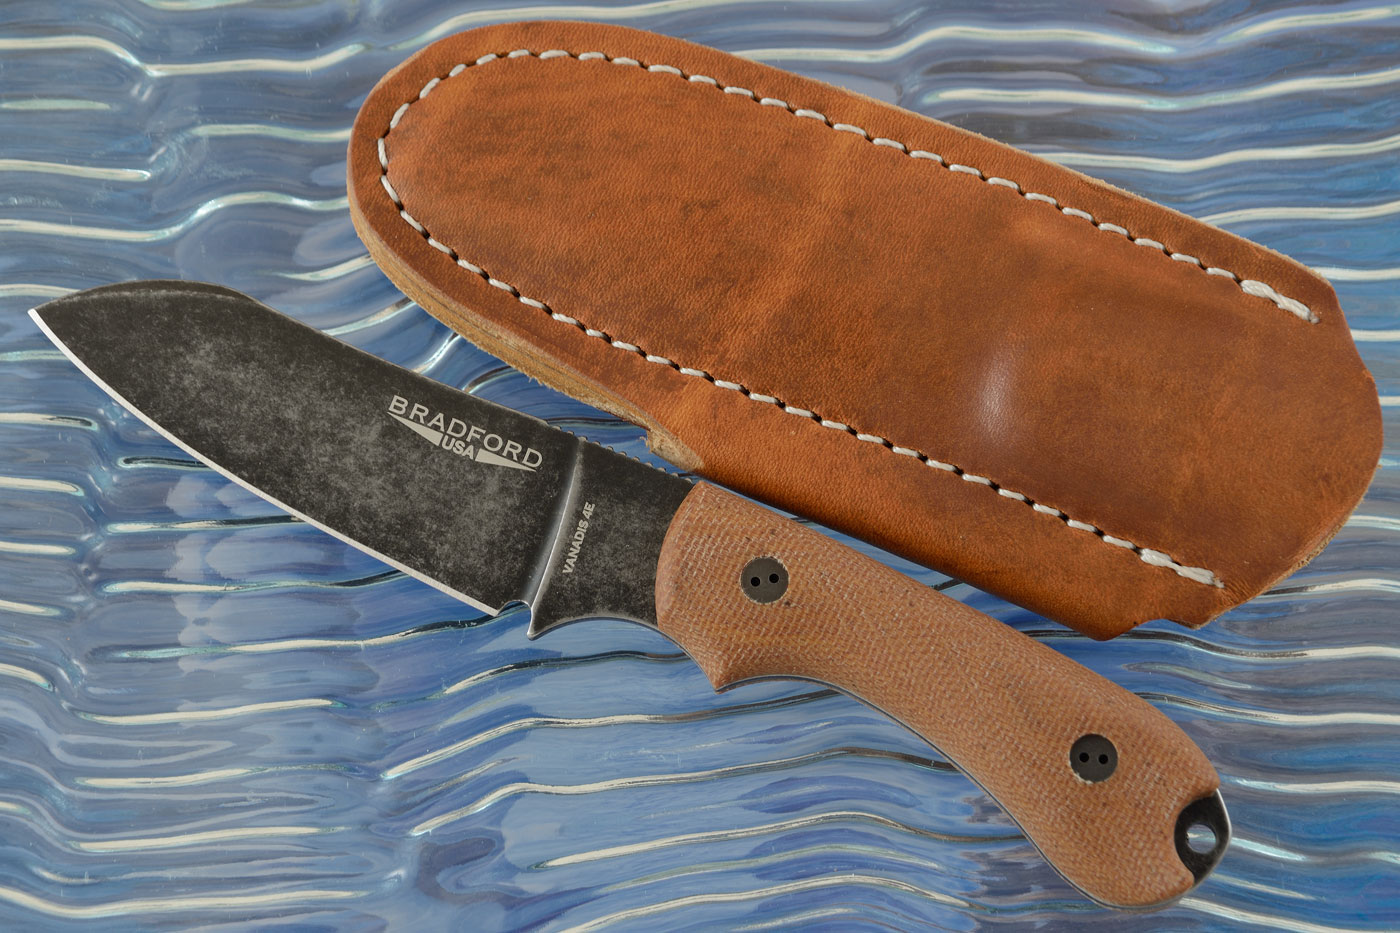 Guardian 3 - 3D Natural Micarta, Vanadis 4E, Nimbus Blade, Sheepsfoot Grind